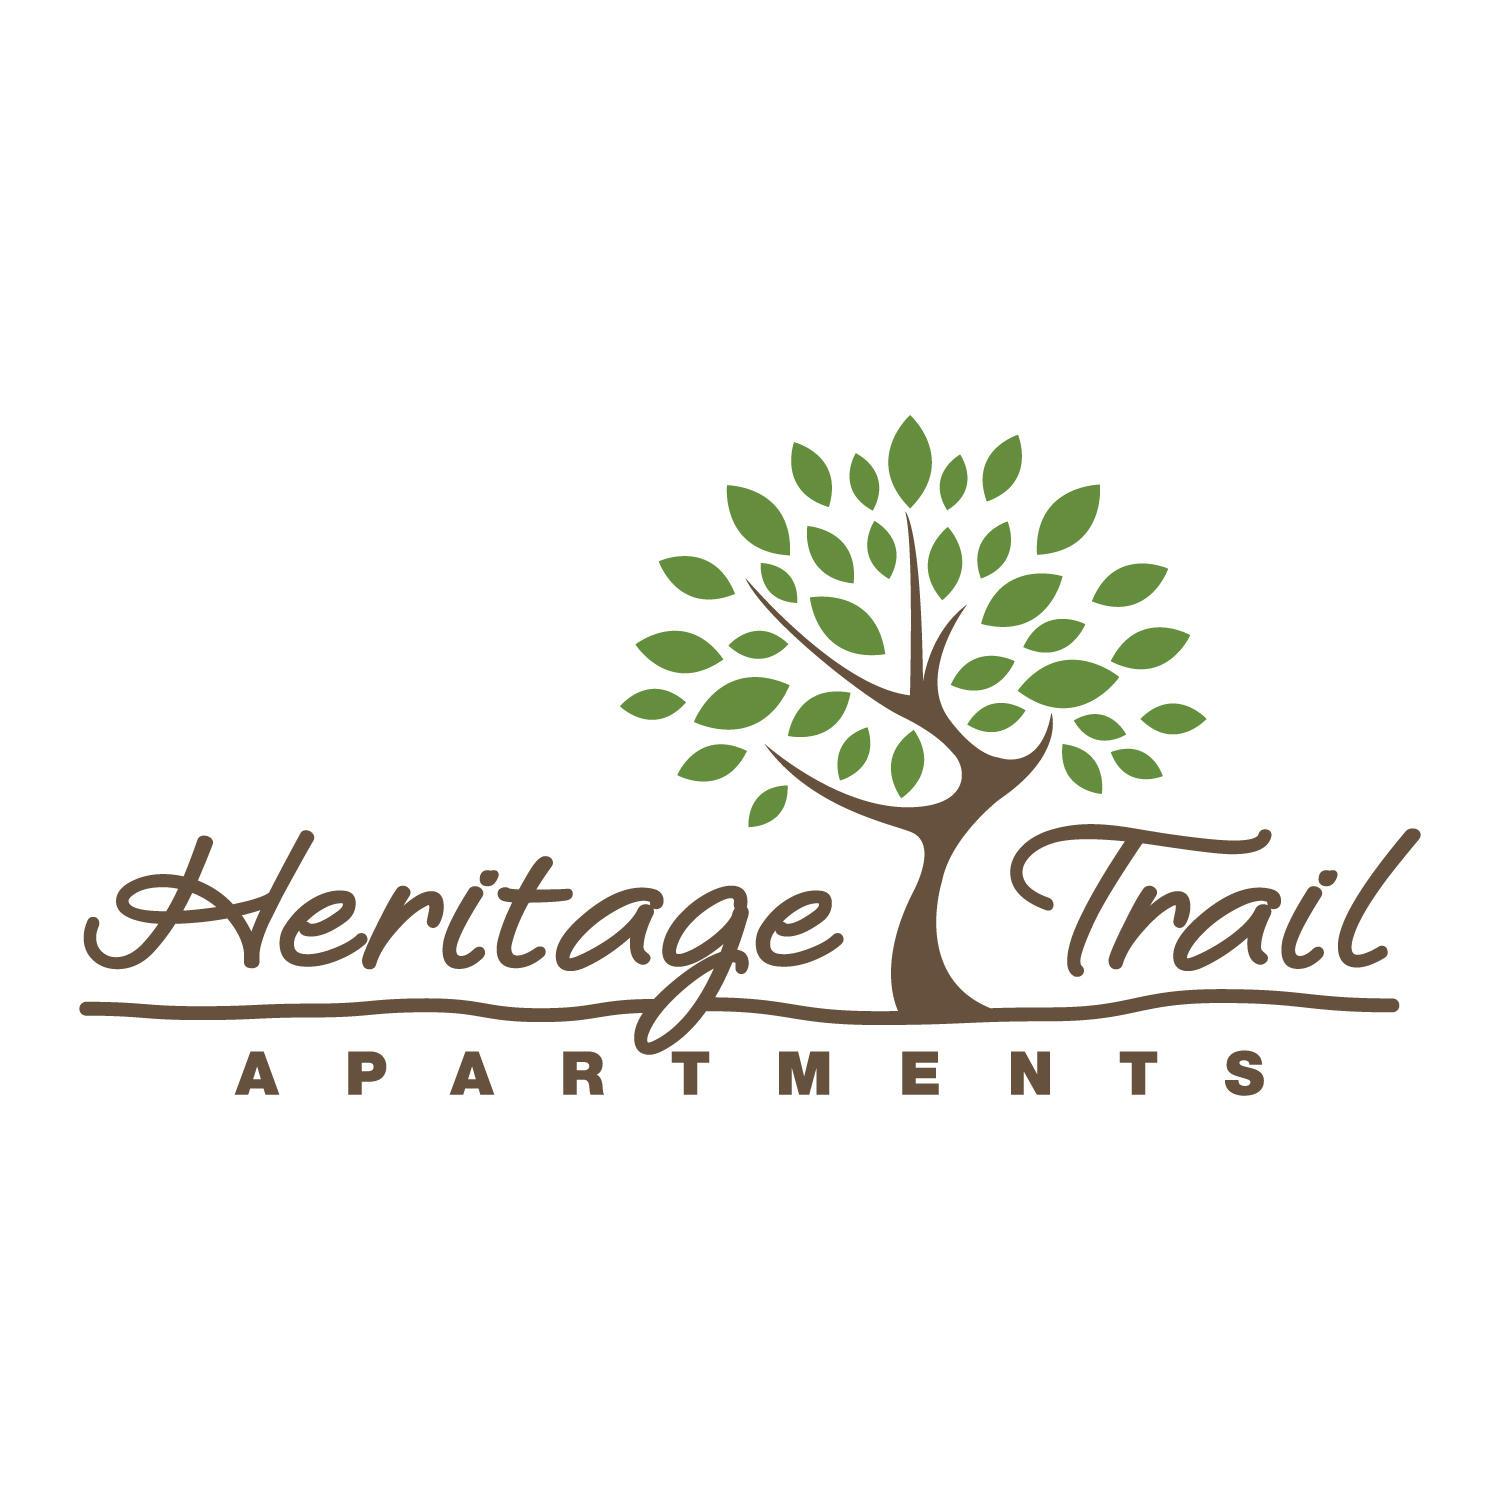 Heritage Trail Apartments